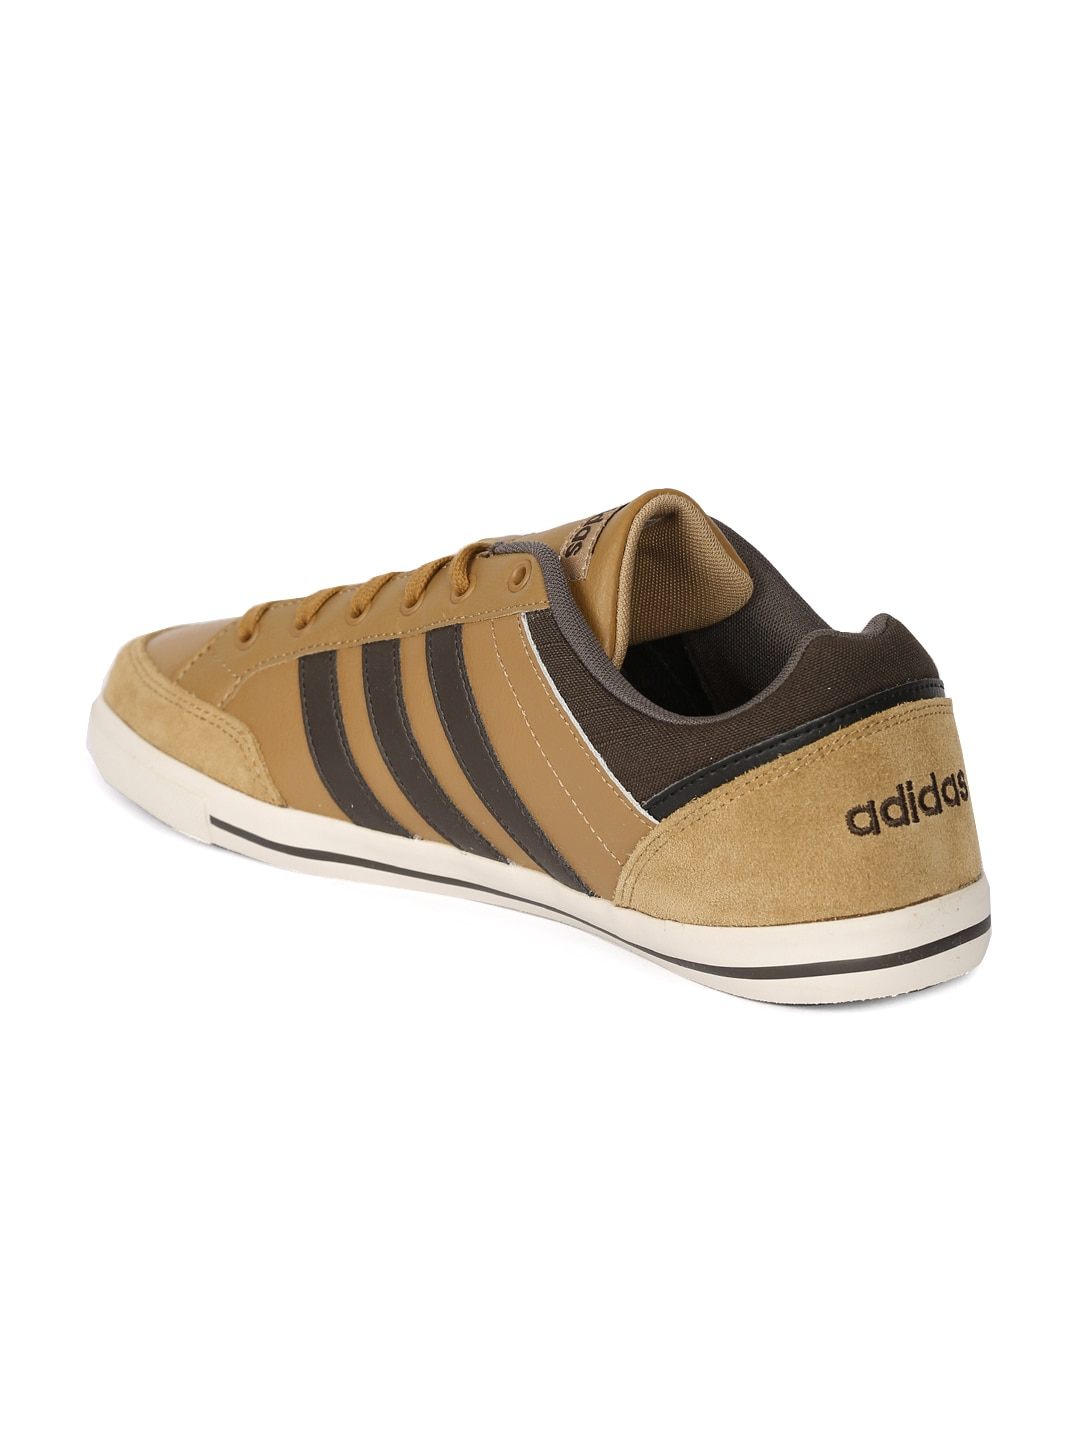 adidas neo leather brown